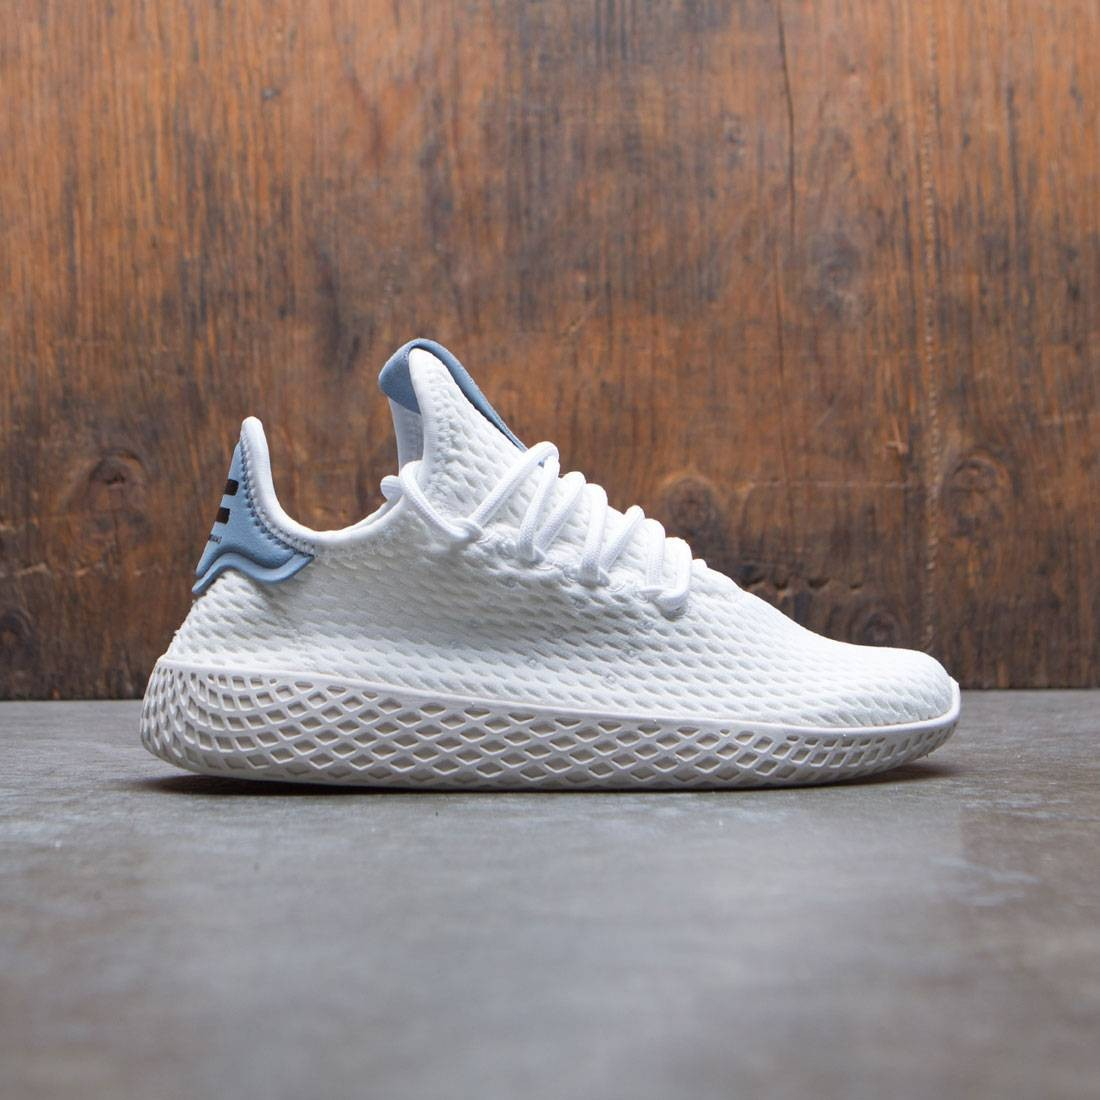 09206bd359129 Adidas x Pharrell Williams Big Kids Tennis HU J white footwear white  tactile blue